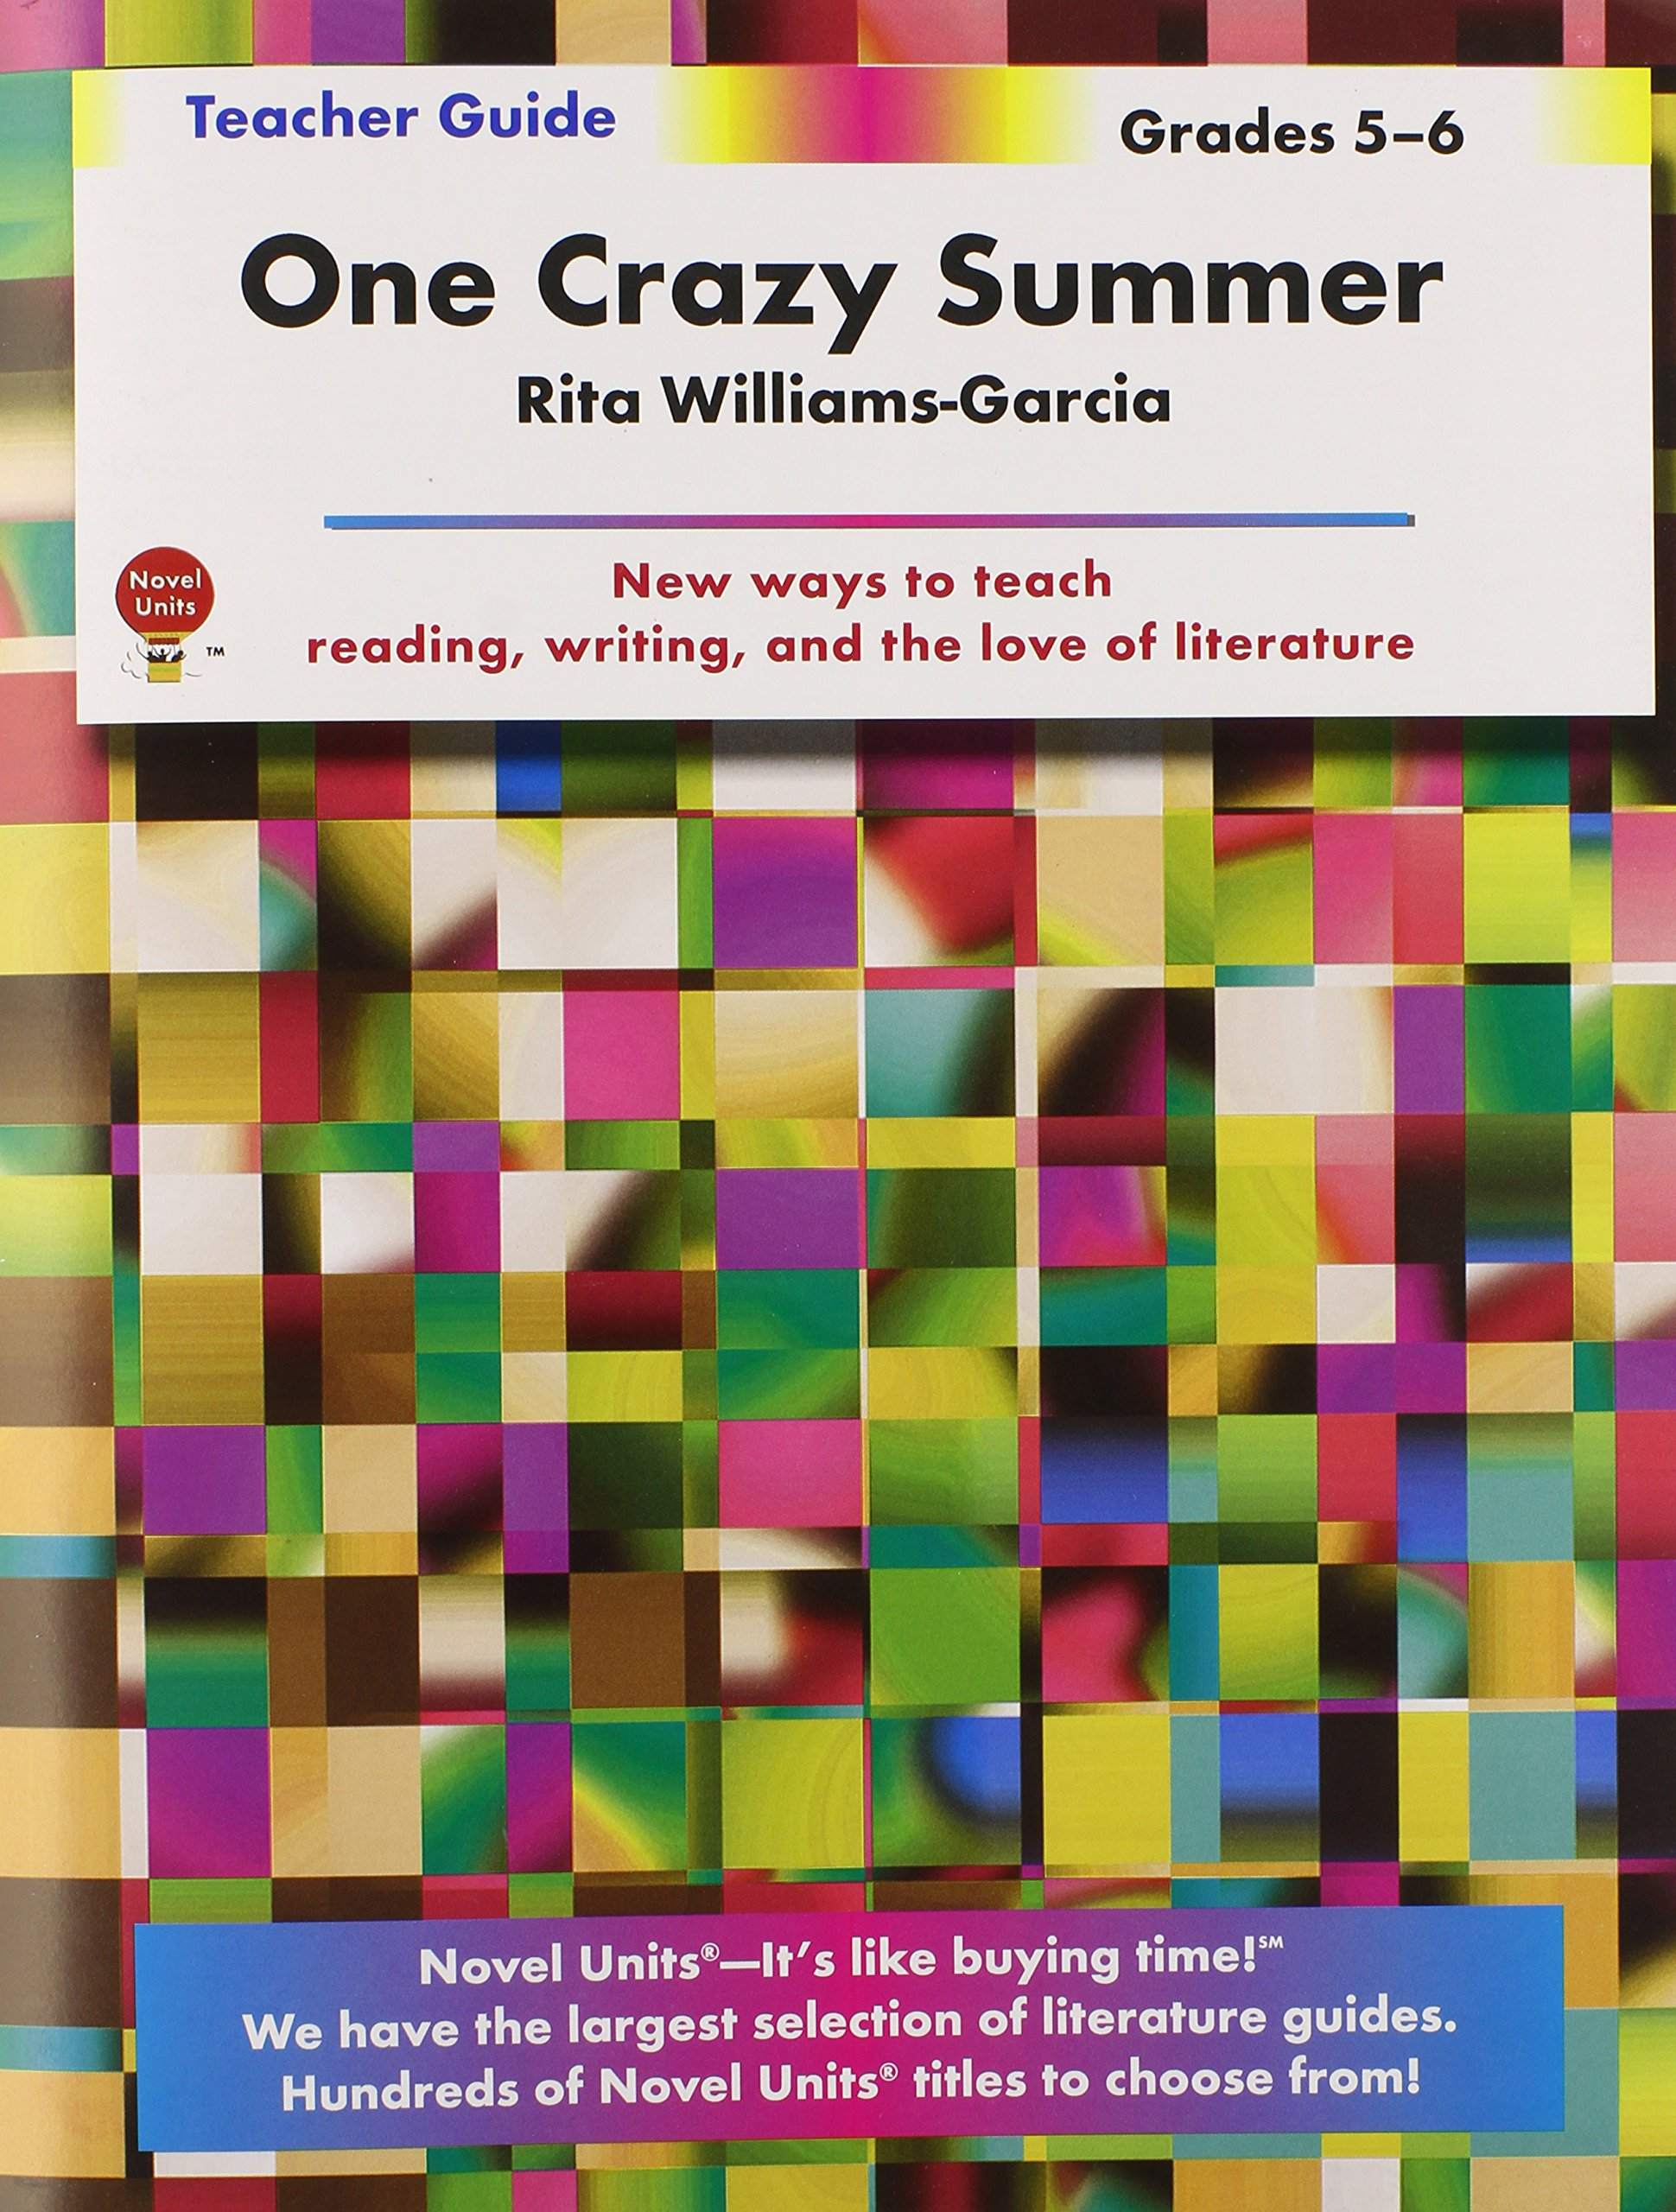 One crazy summer teacher guide by novel units inc novel units one crazy summer teacher guide by novel units inc novel units inc 9781608787241 amazon books fandeluxe Gallery